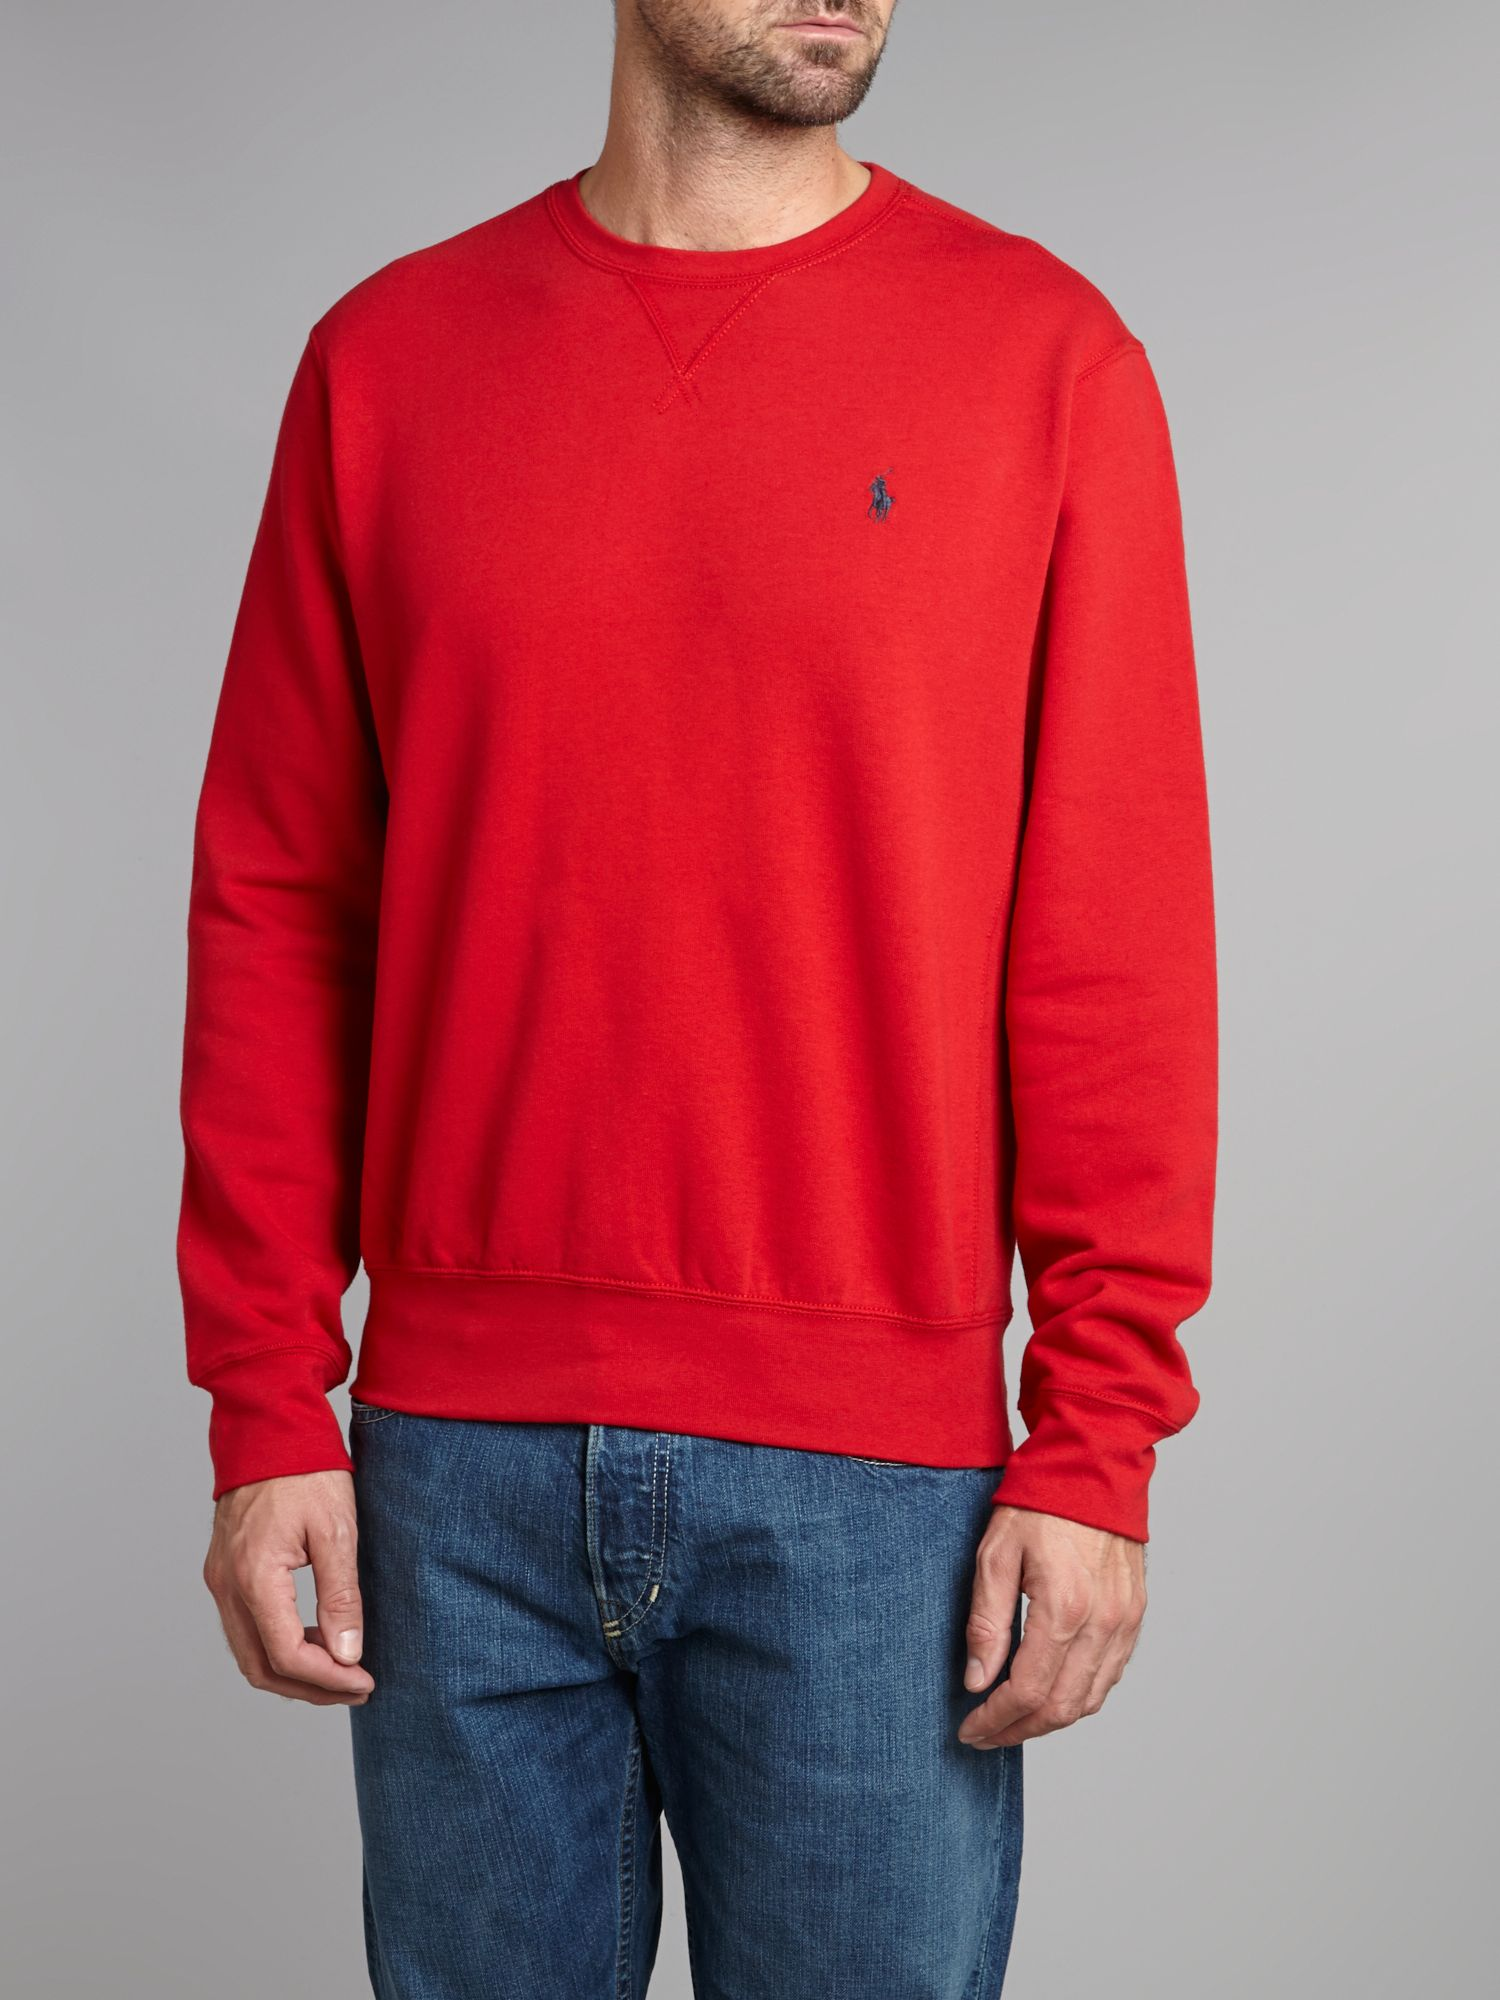 Polo Ralph Lauren Cotton Classic Crew Neck Sweater in Red ...